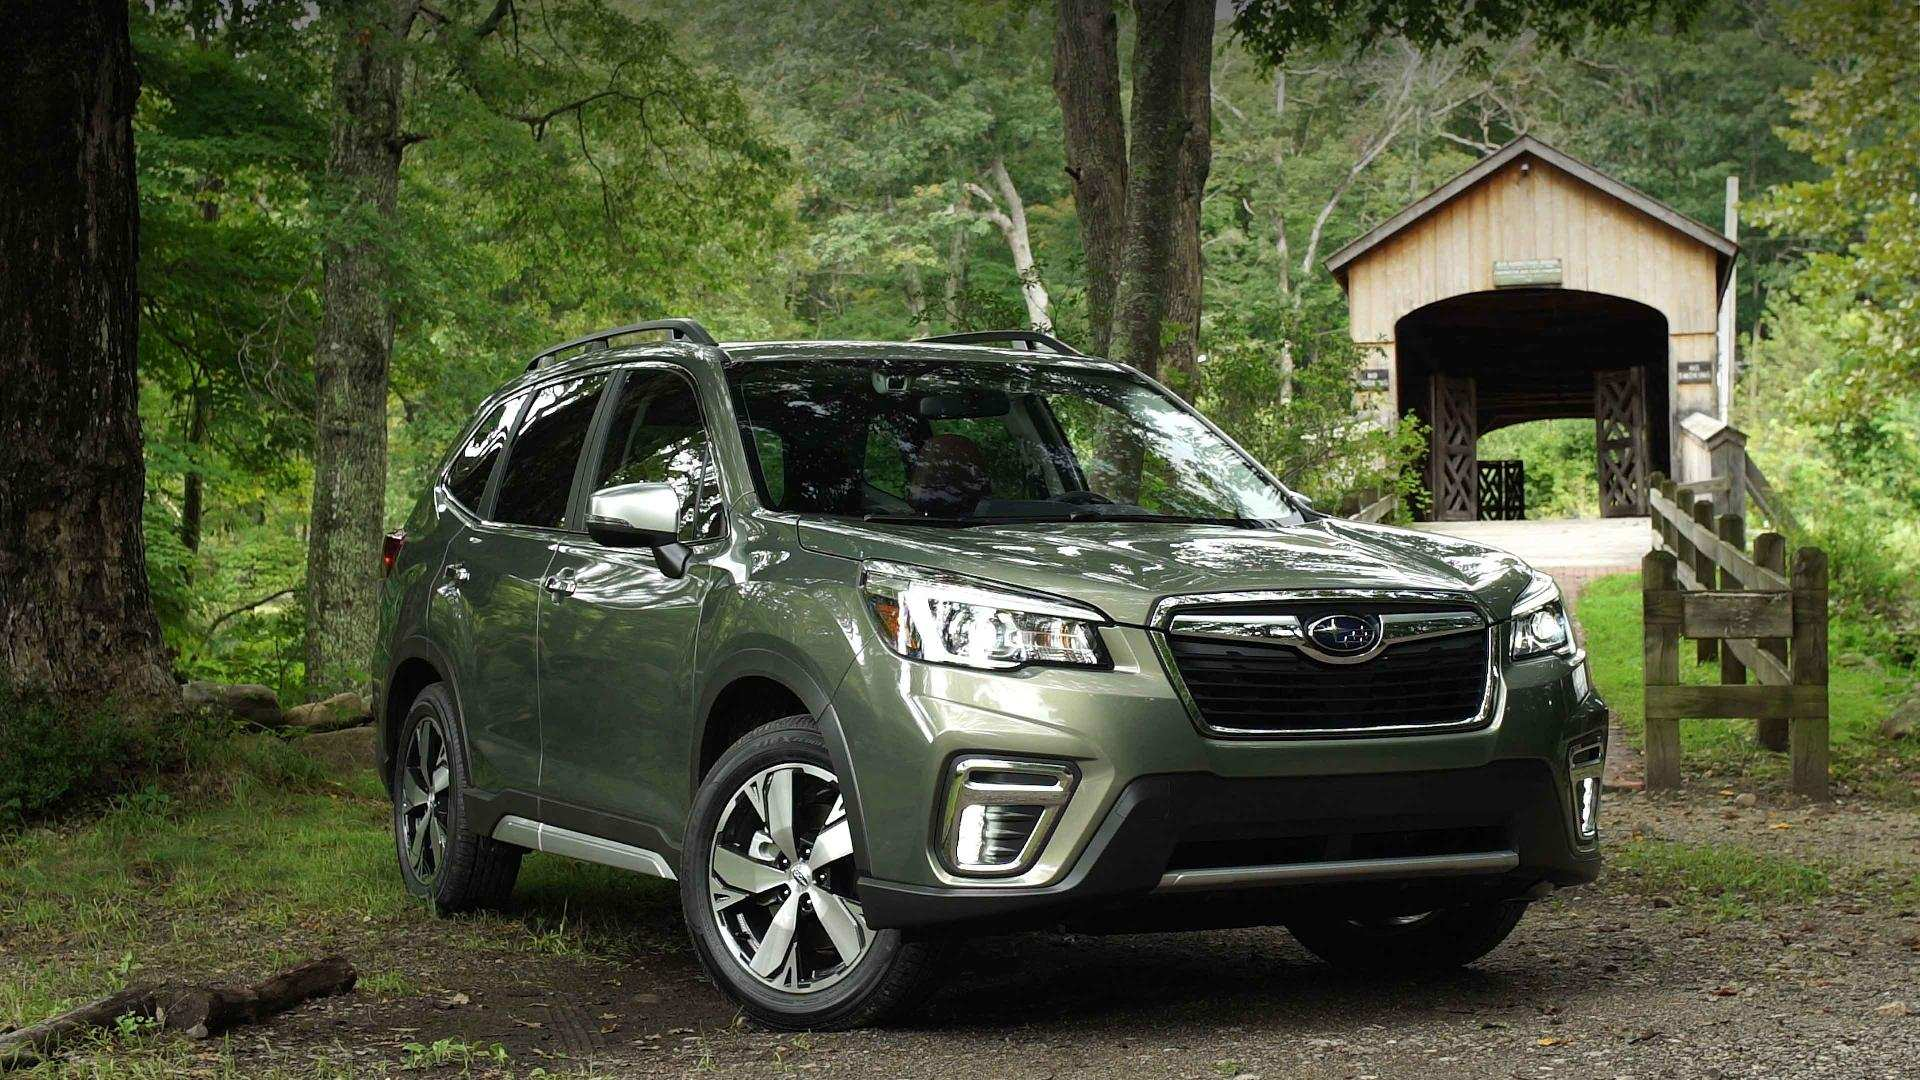 44 A Subaru Forester 2019 Ground Clearance Rumors